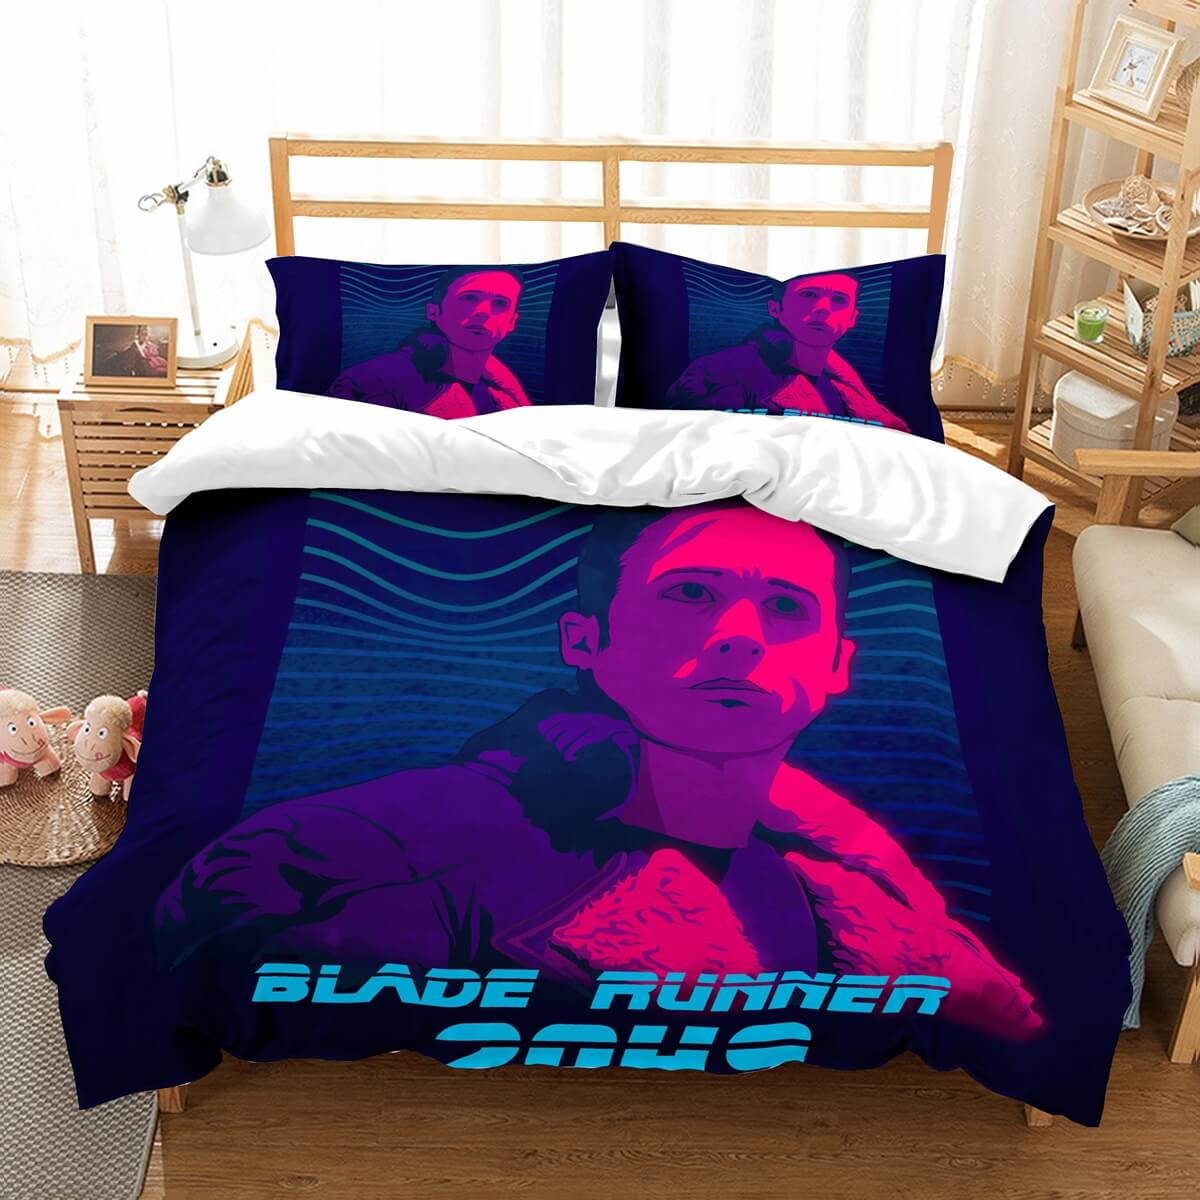 3D Customize Blade Runner 2049 Bedding Set Duvet Cover Set Bedroom Set Bedlinen